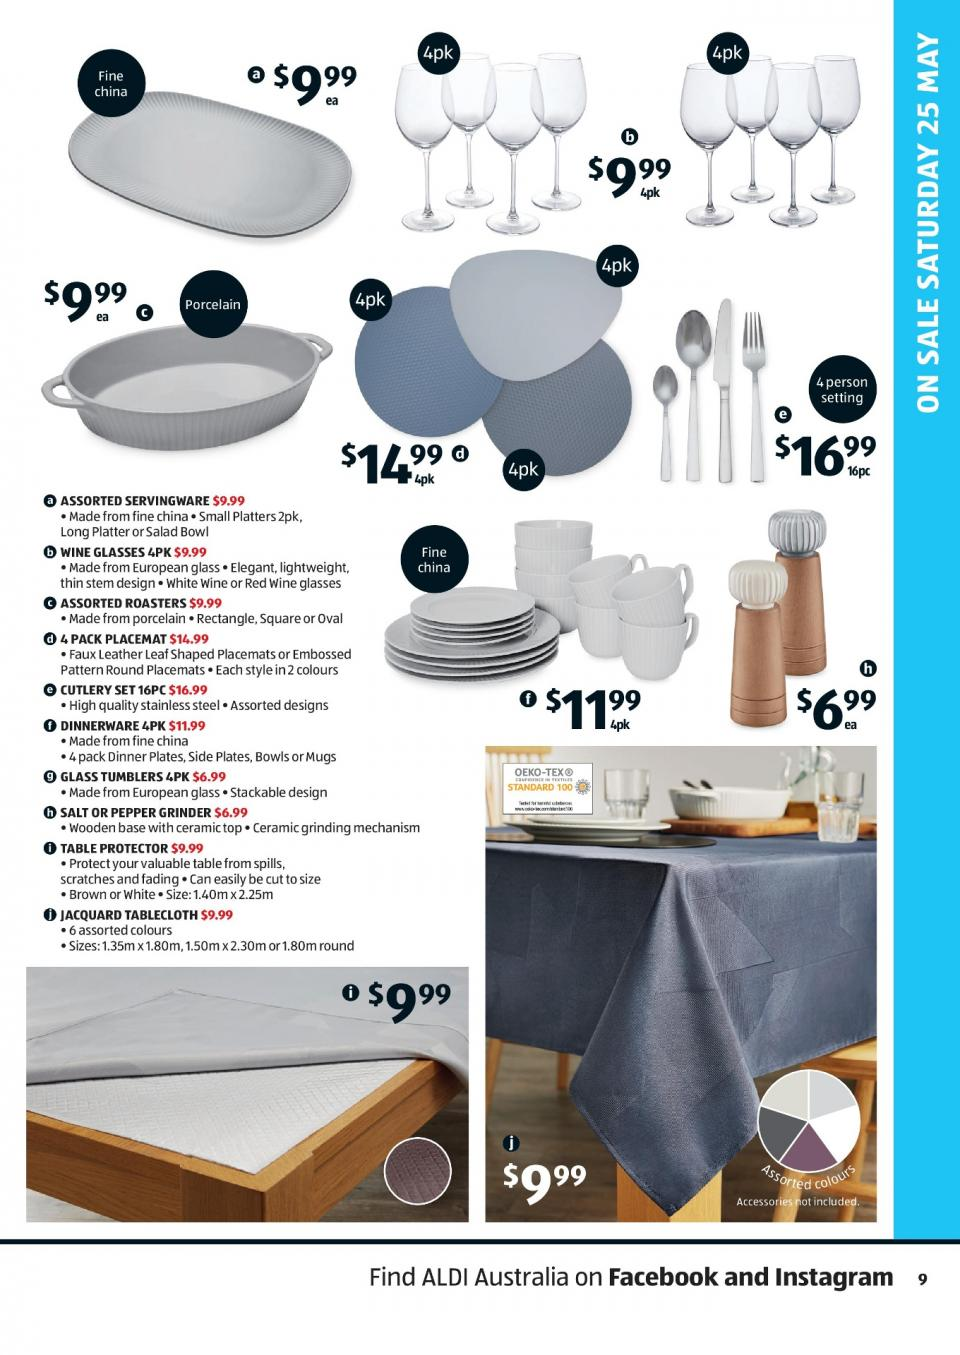 aldi catalogue special buys week 21 2019